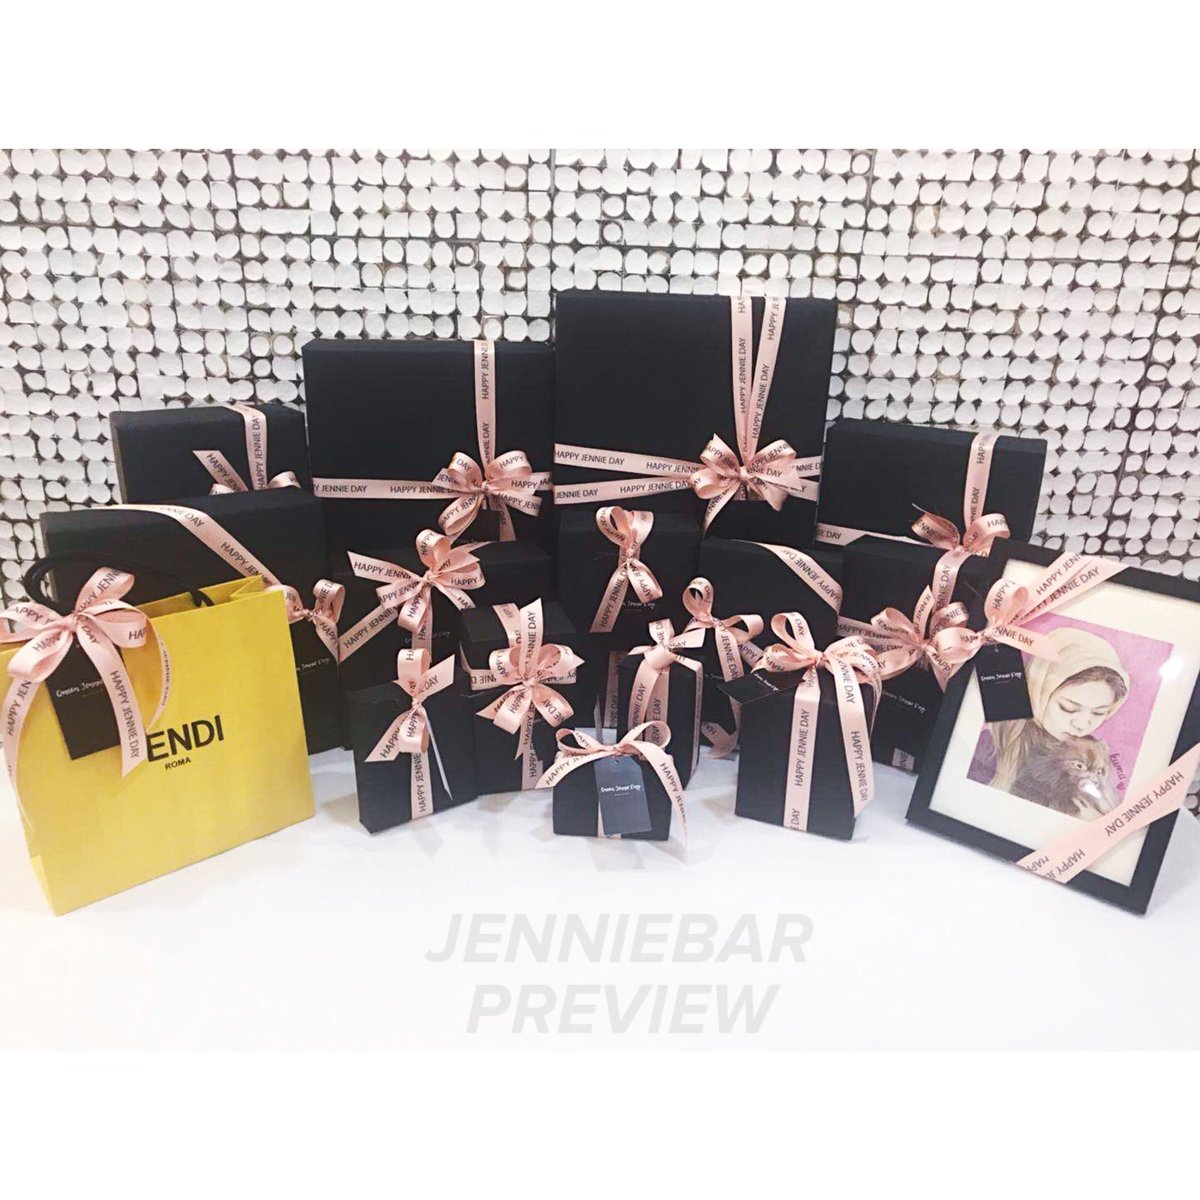 JENNIEBAR On Twitter 2018 JENNIE BDAY GIFT The Gifts Were Delivered And Received By YG Today HappyJendeukieDay BLACKPINK